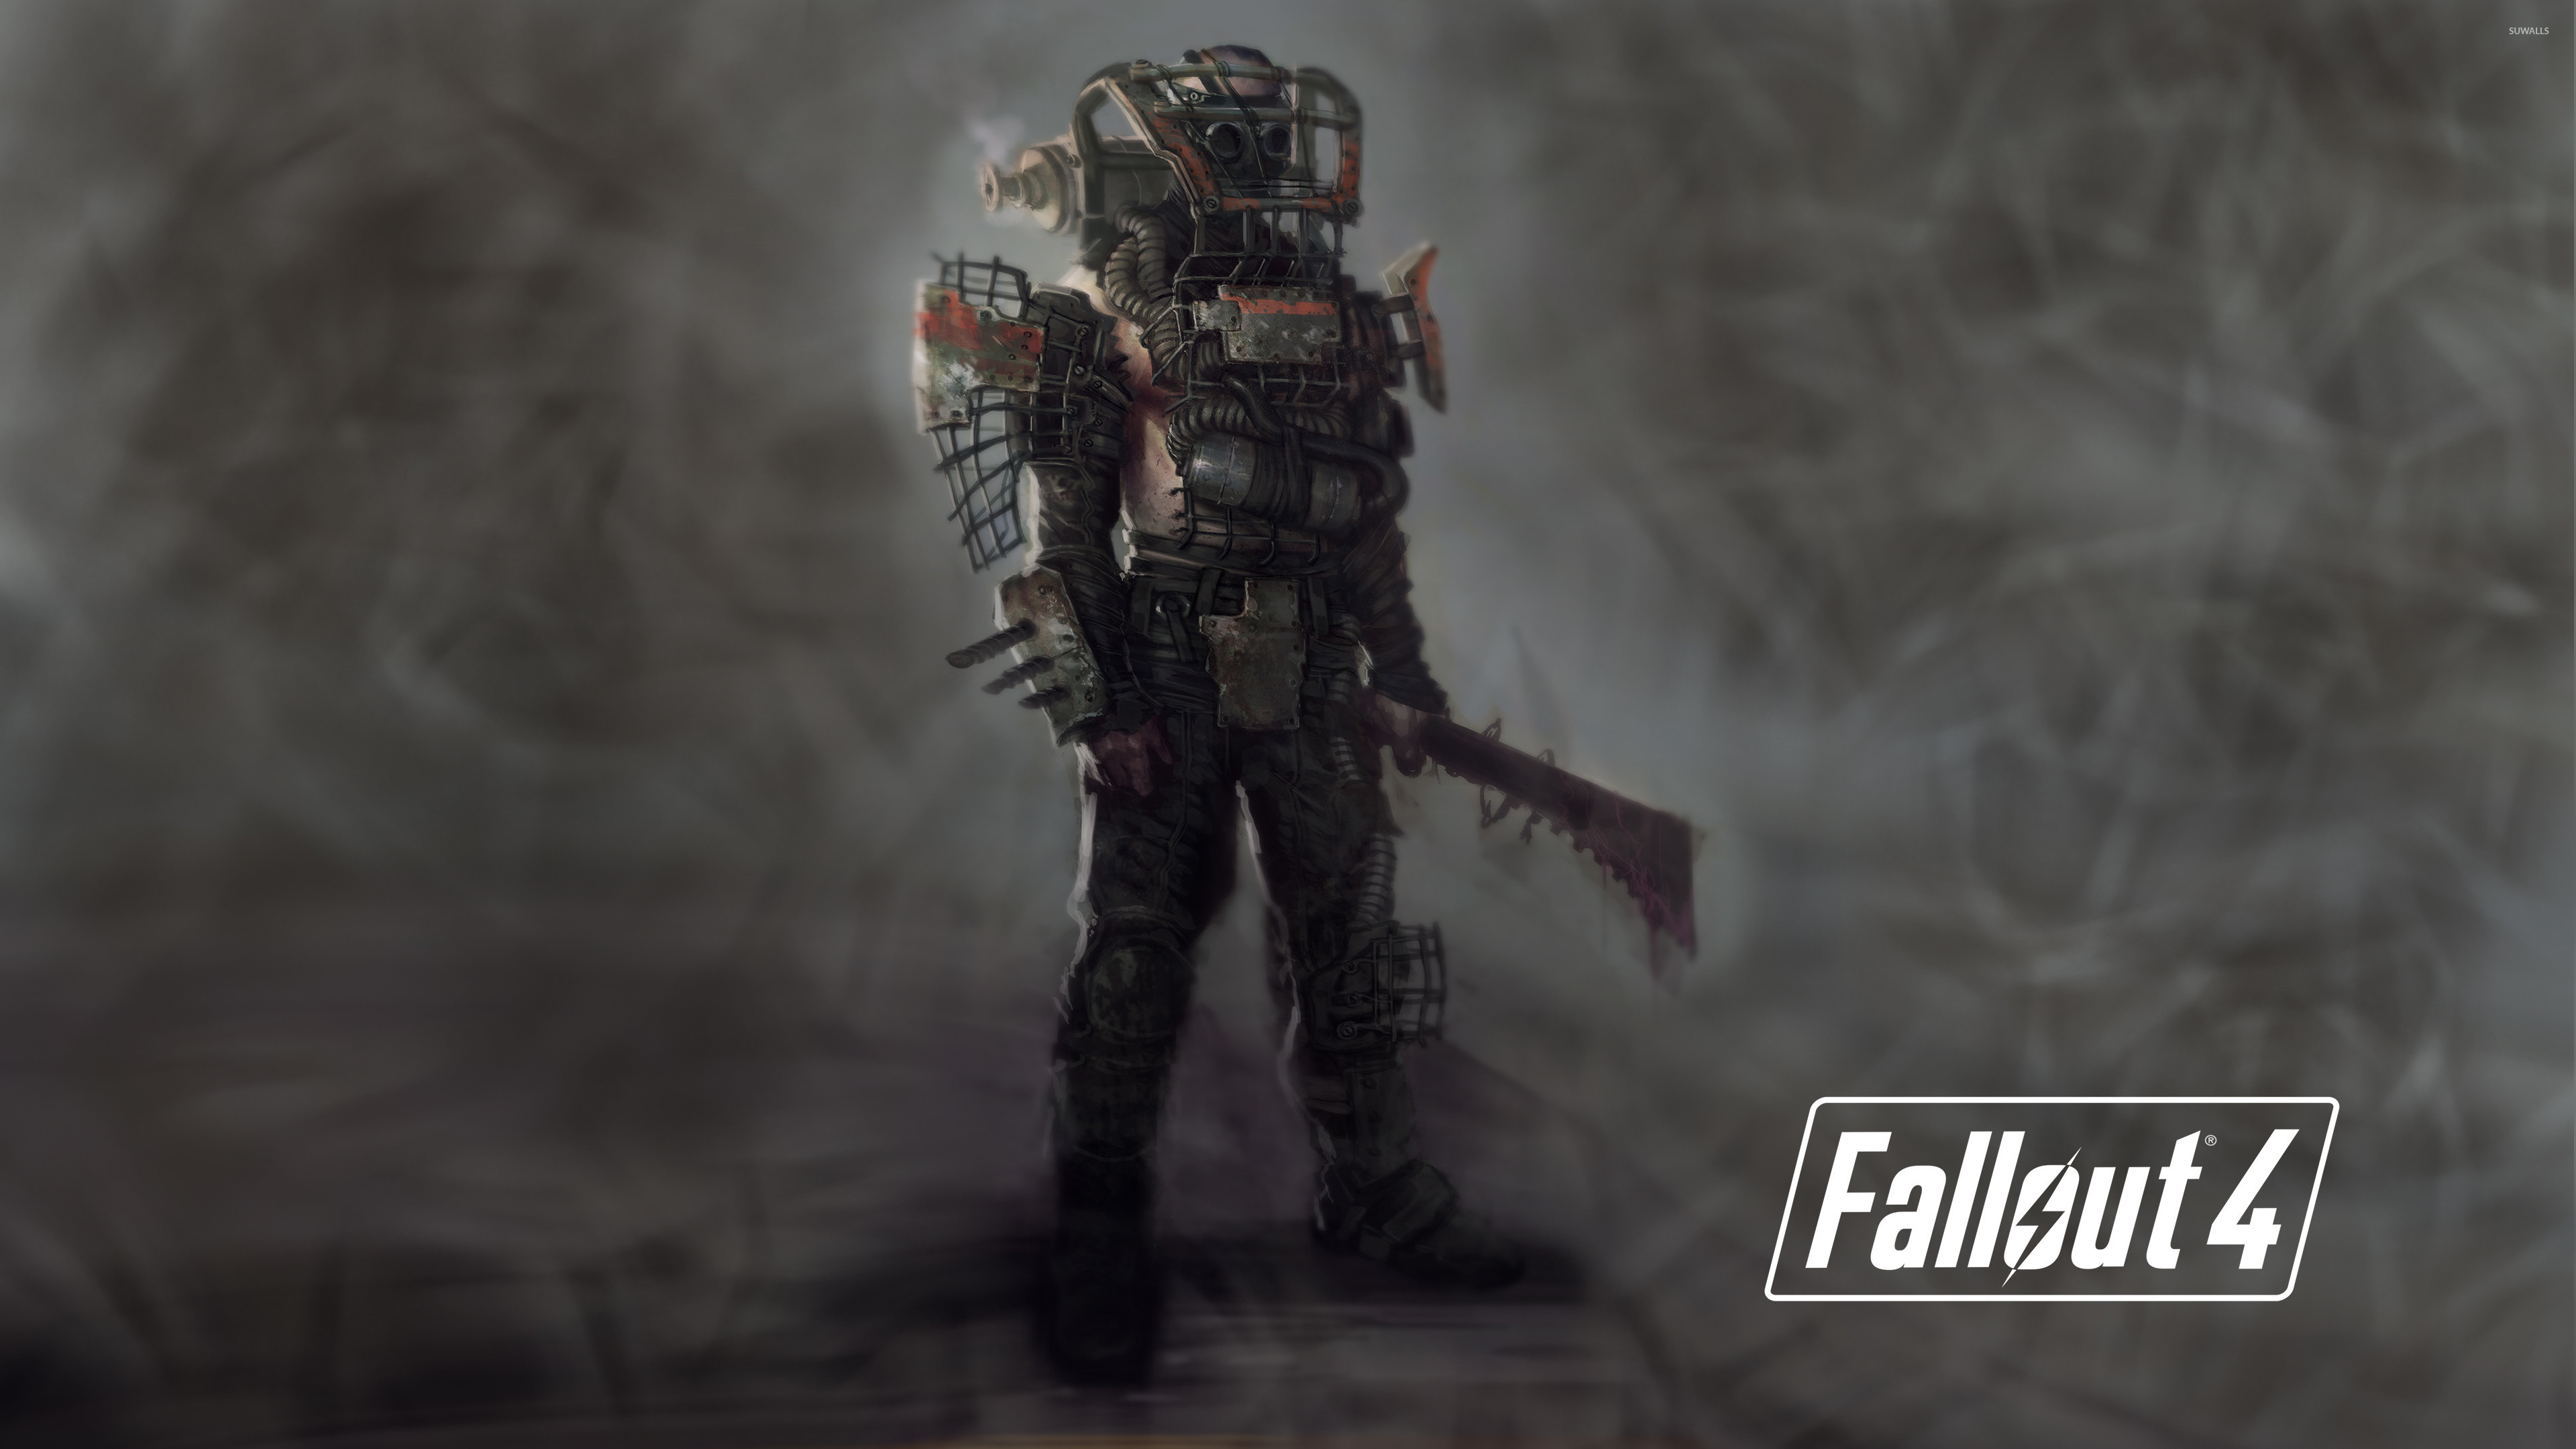 3840x2160  Raider in Fallout 4 wallpaper  jpg